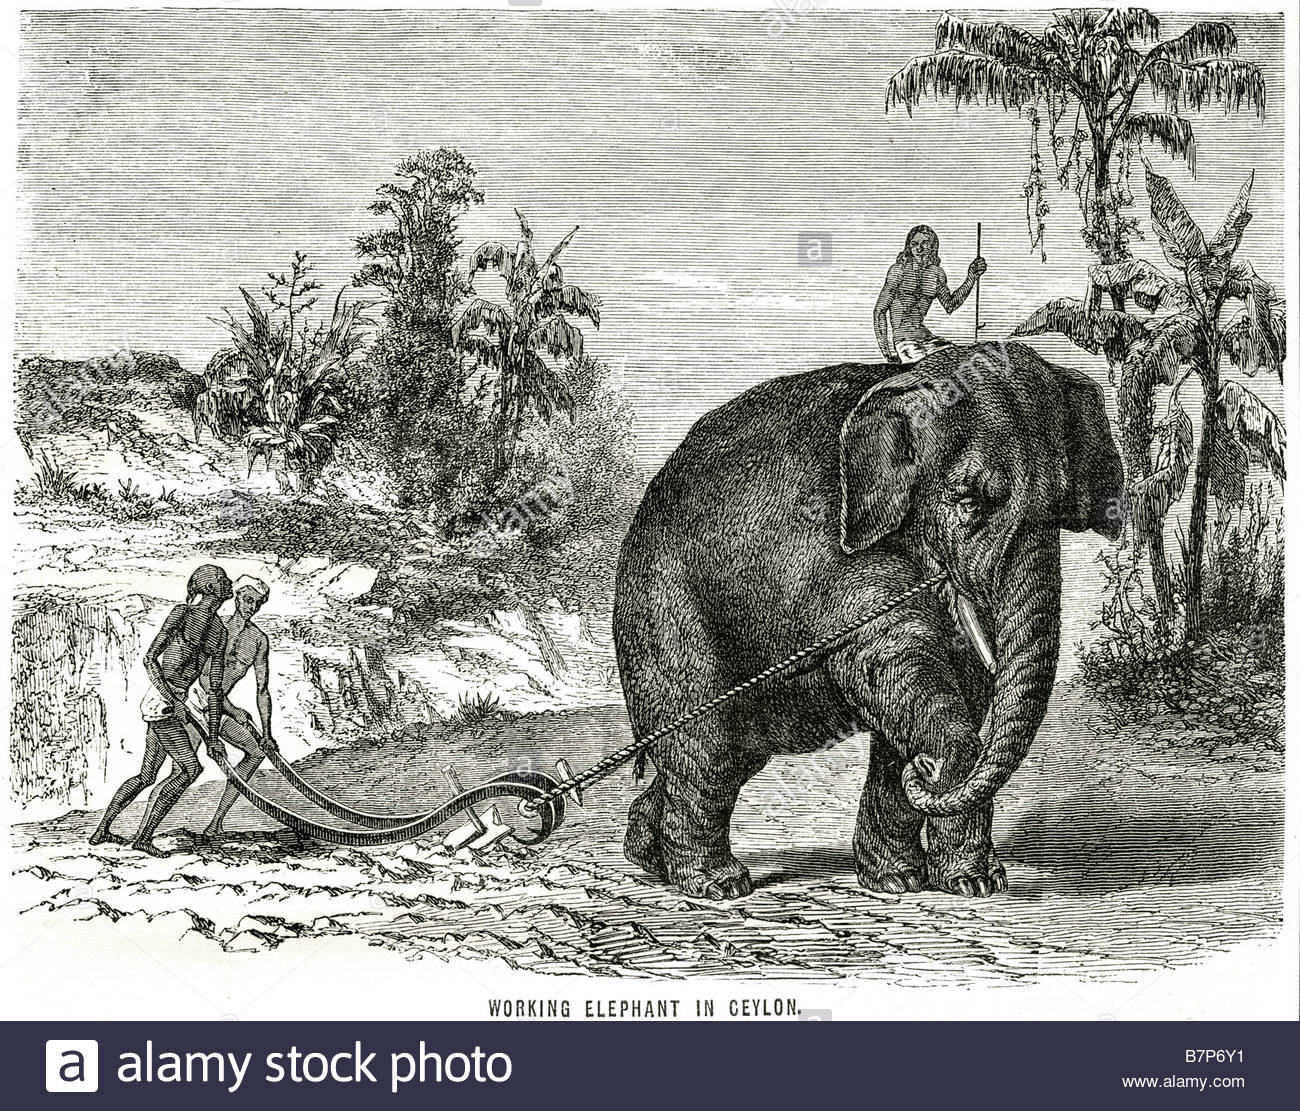 working-elephant-ceylon-animal-farming-land-traditional-wildlife-nature-B7P6Y1